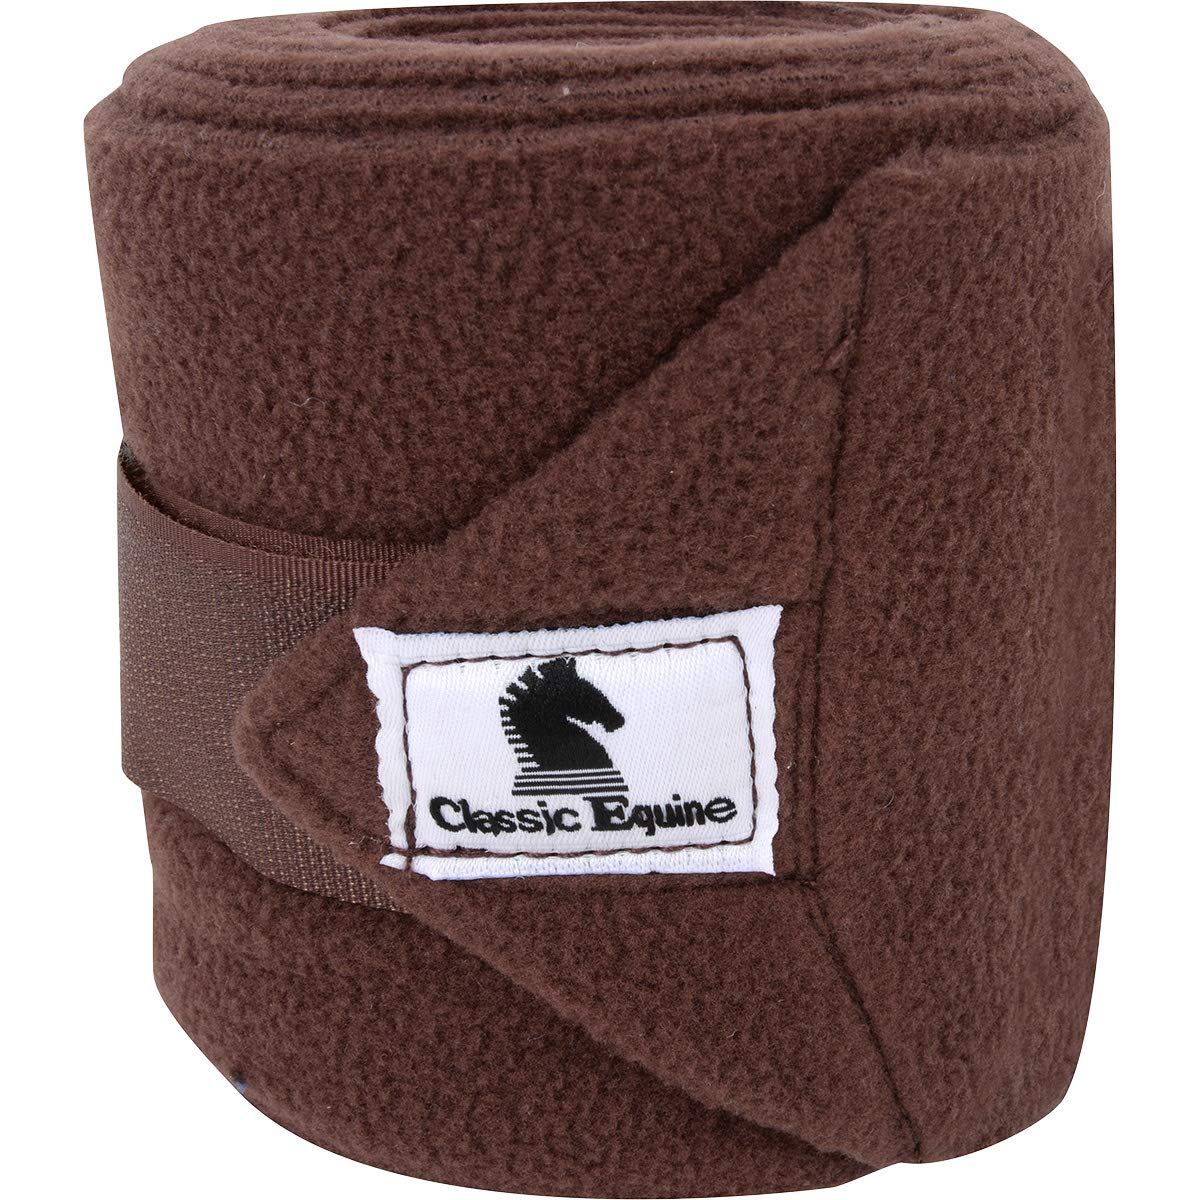 Classic Equine Polo Wraps, Chocolate by Classic Equine